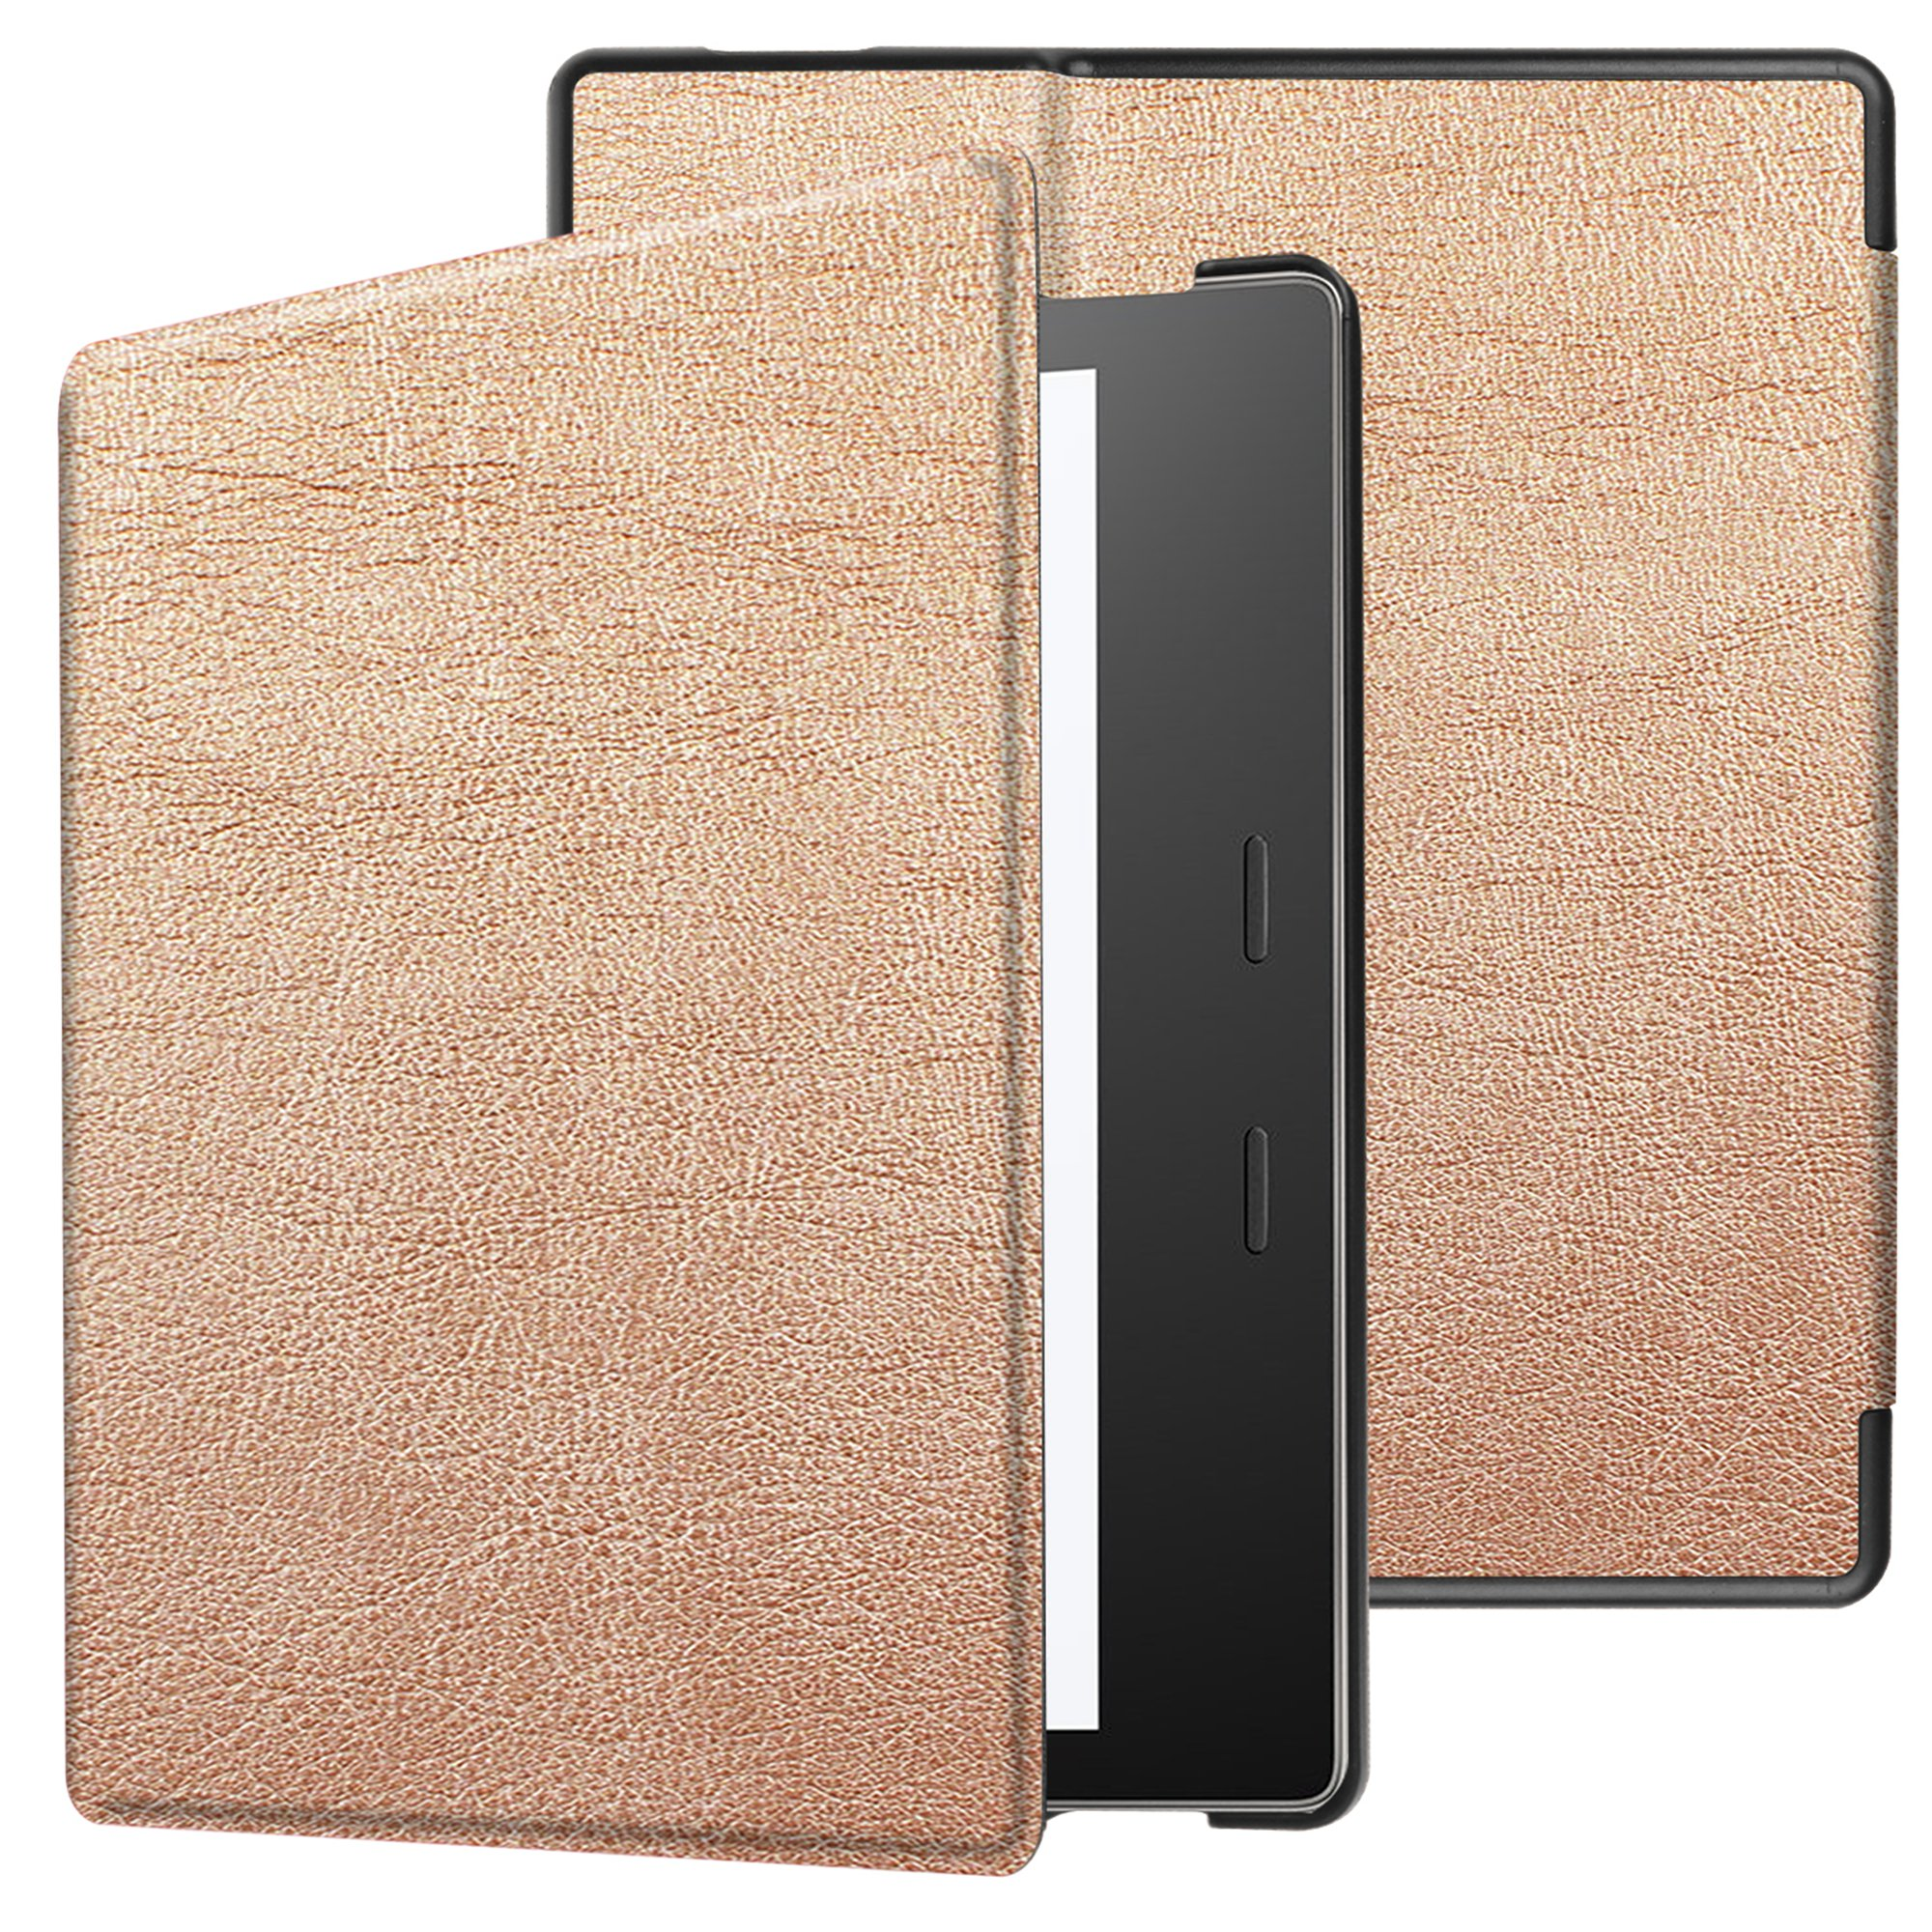 Dteck Slim Case For All New Kindle Oasis E-reader 7 Inch